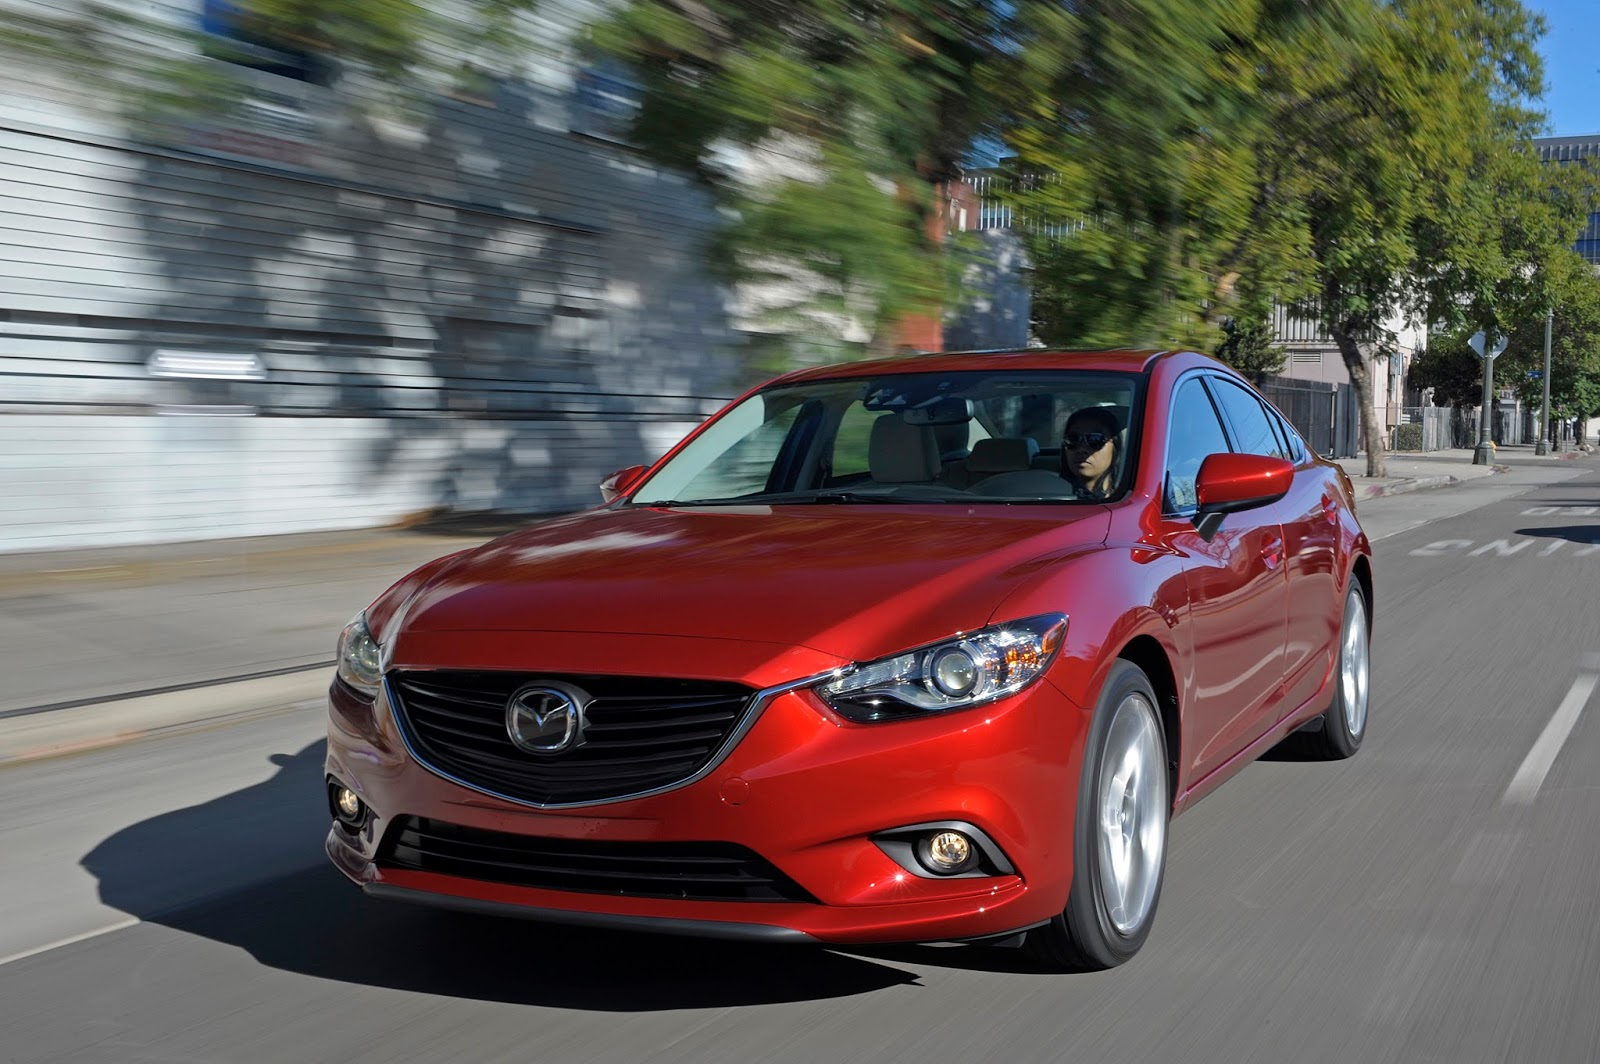 Daily Turismo: Weekend Match-Up: New 4-Door Sedan for JB1025